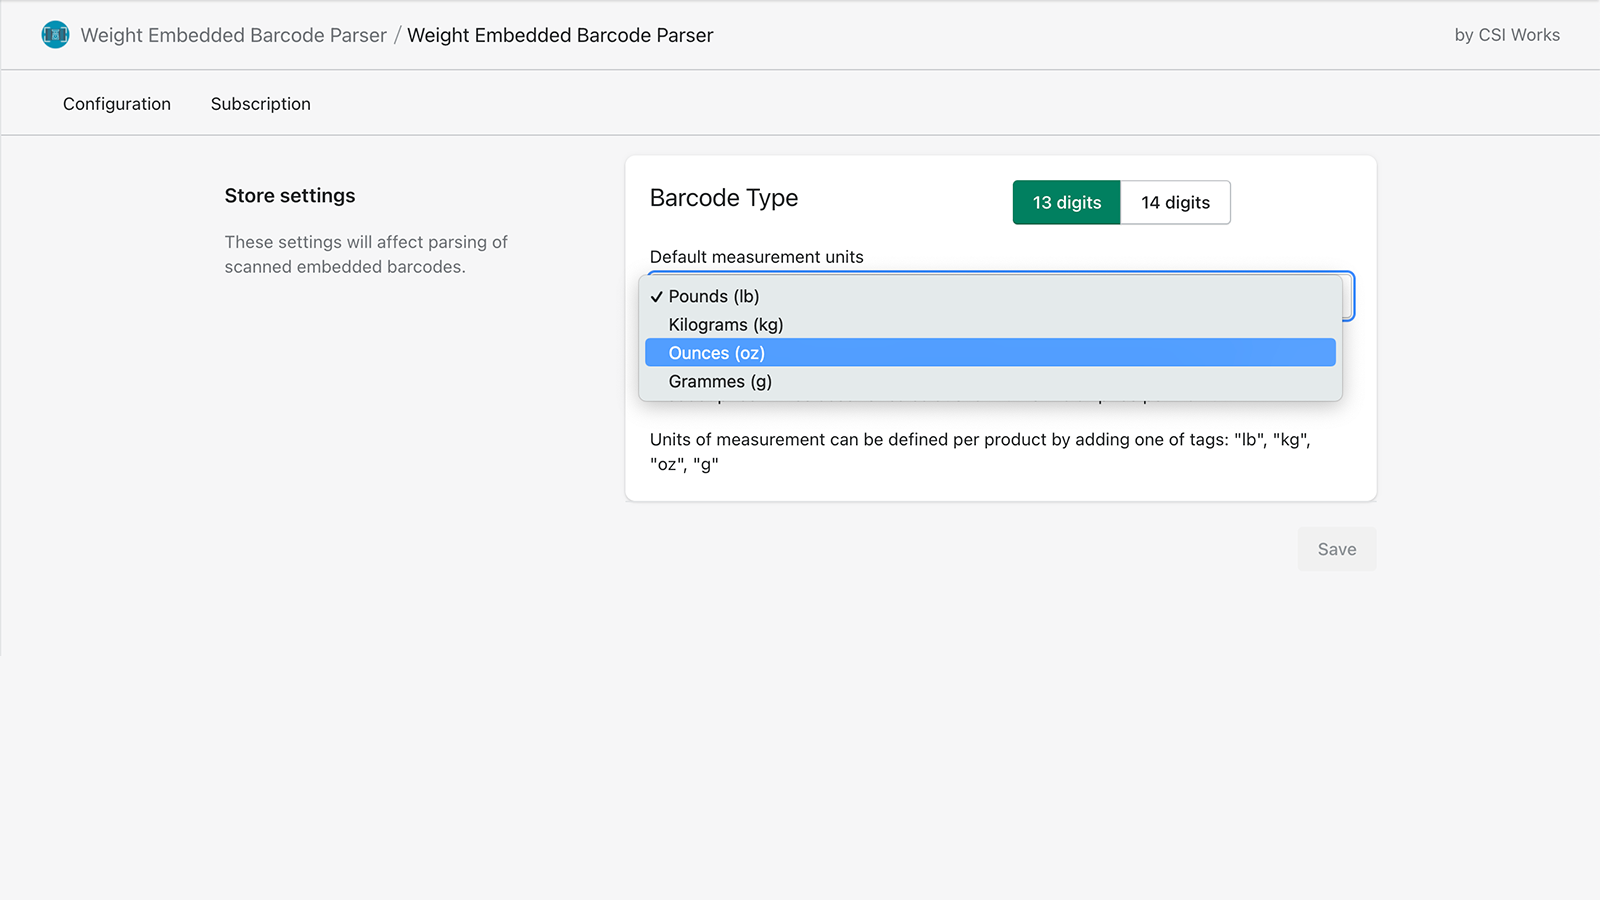 Weight Embedded Barcode Parser works with Many units of measure